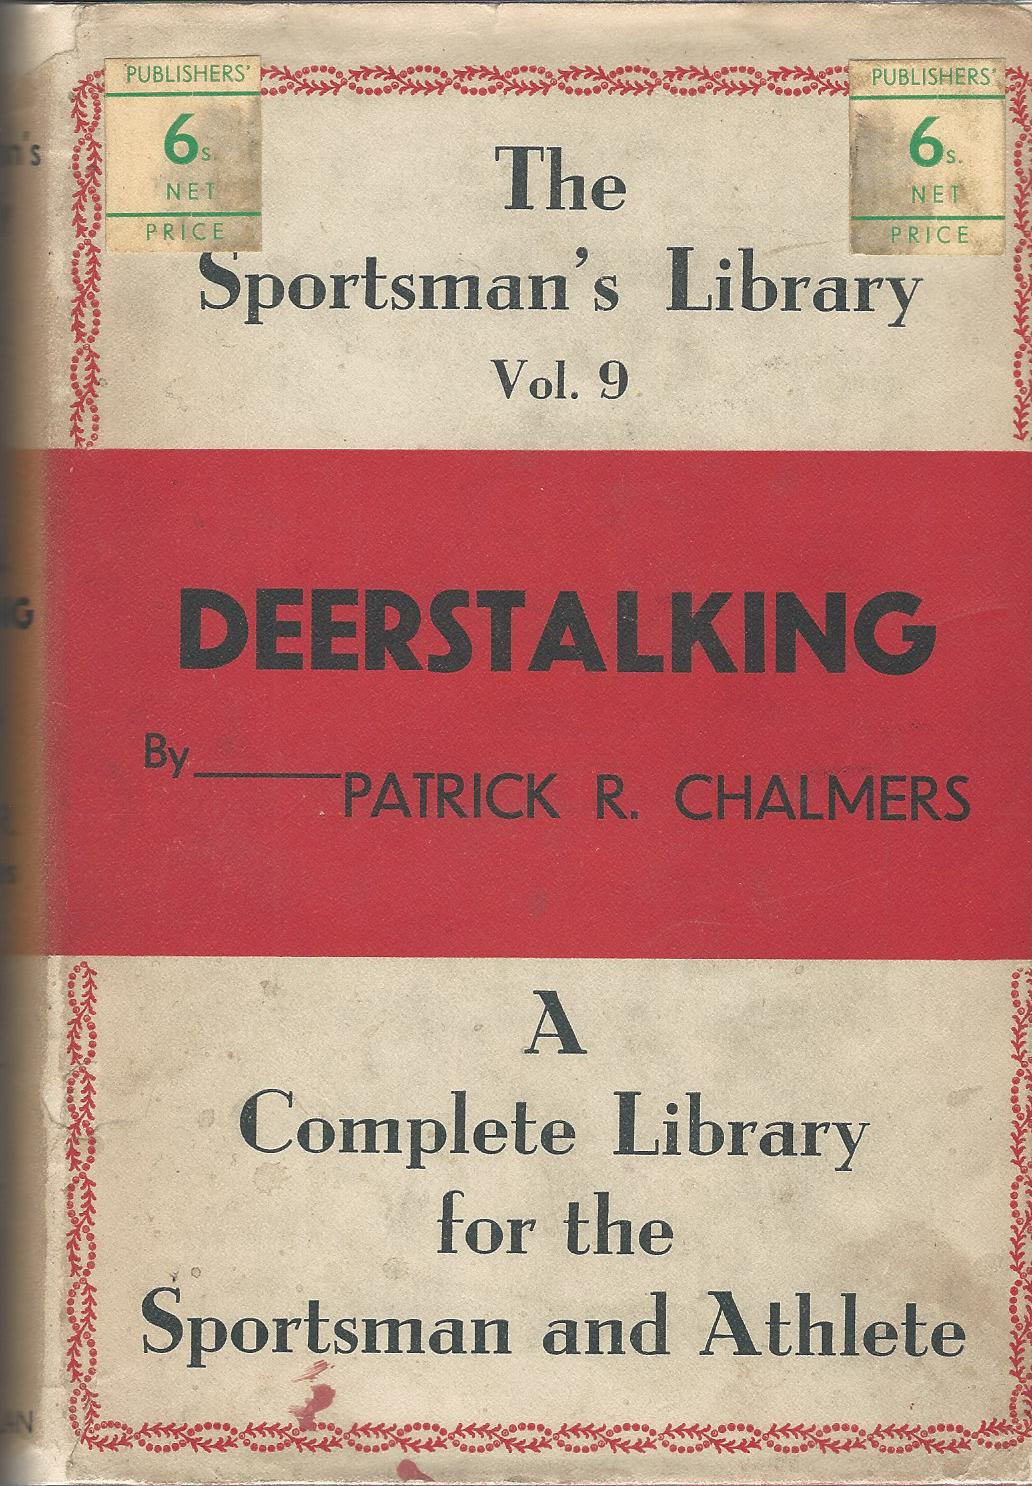 Image for Deerstalking: The Sportsman's Library Vol. 9.